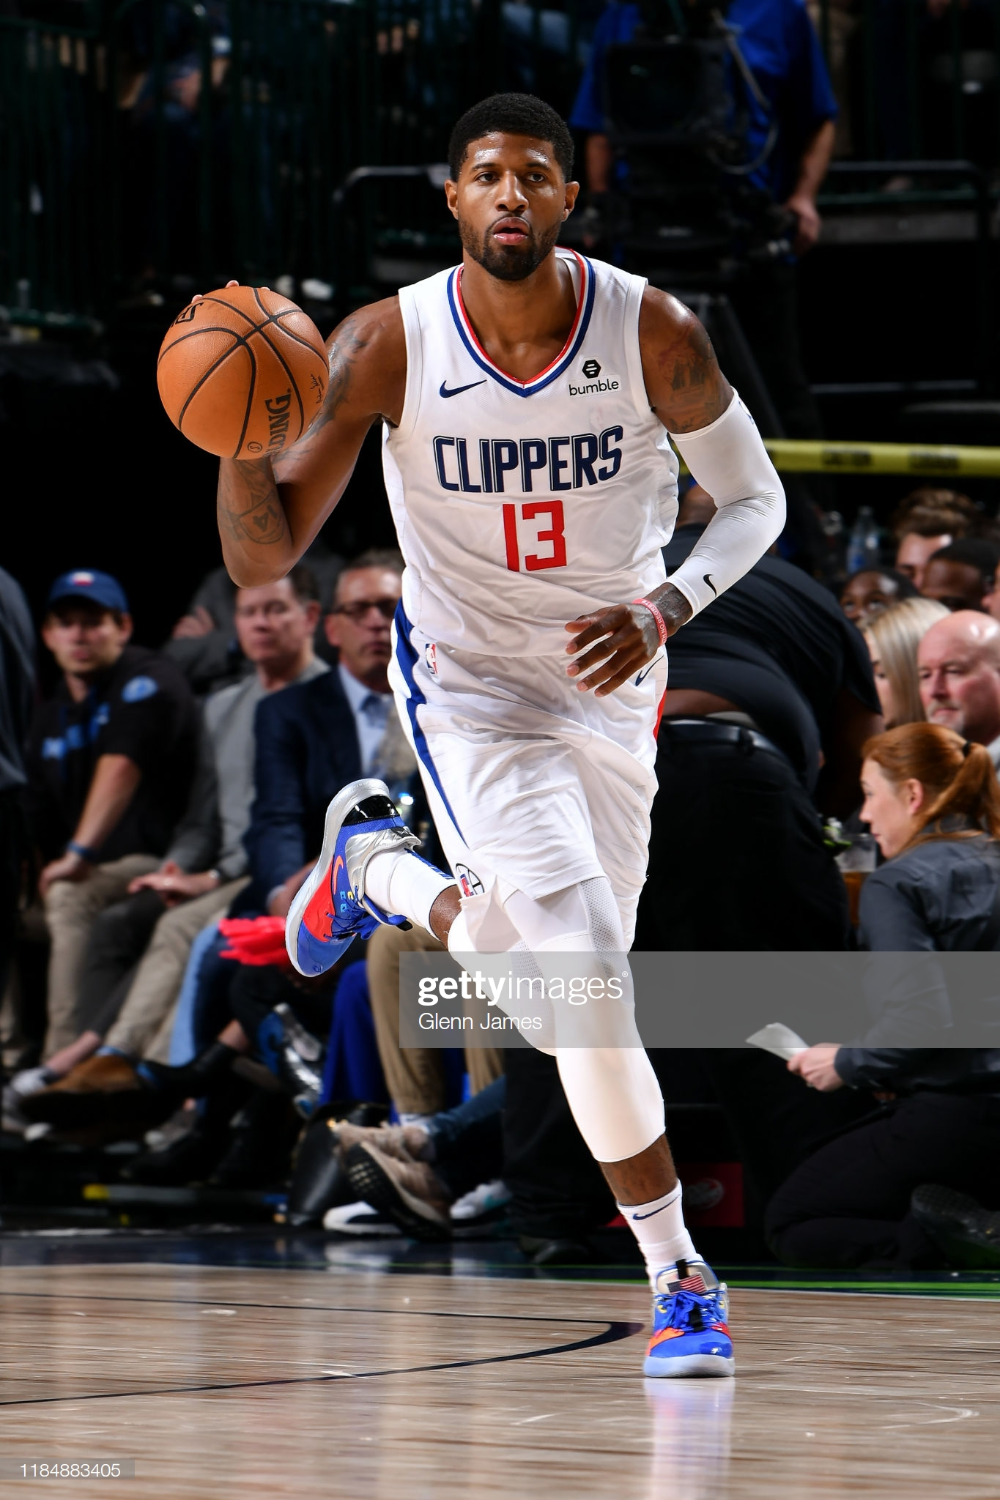 Paul George Of The La Clippers Handles The Ball Against The Dallas Paul George La Clippers Nba Players